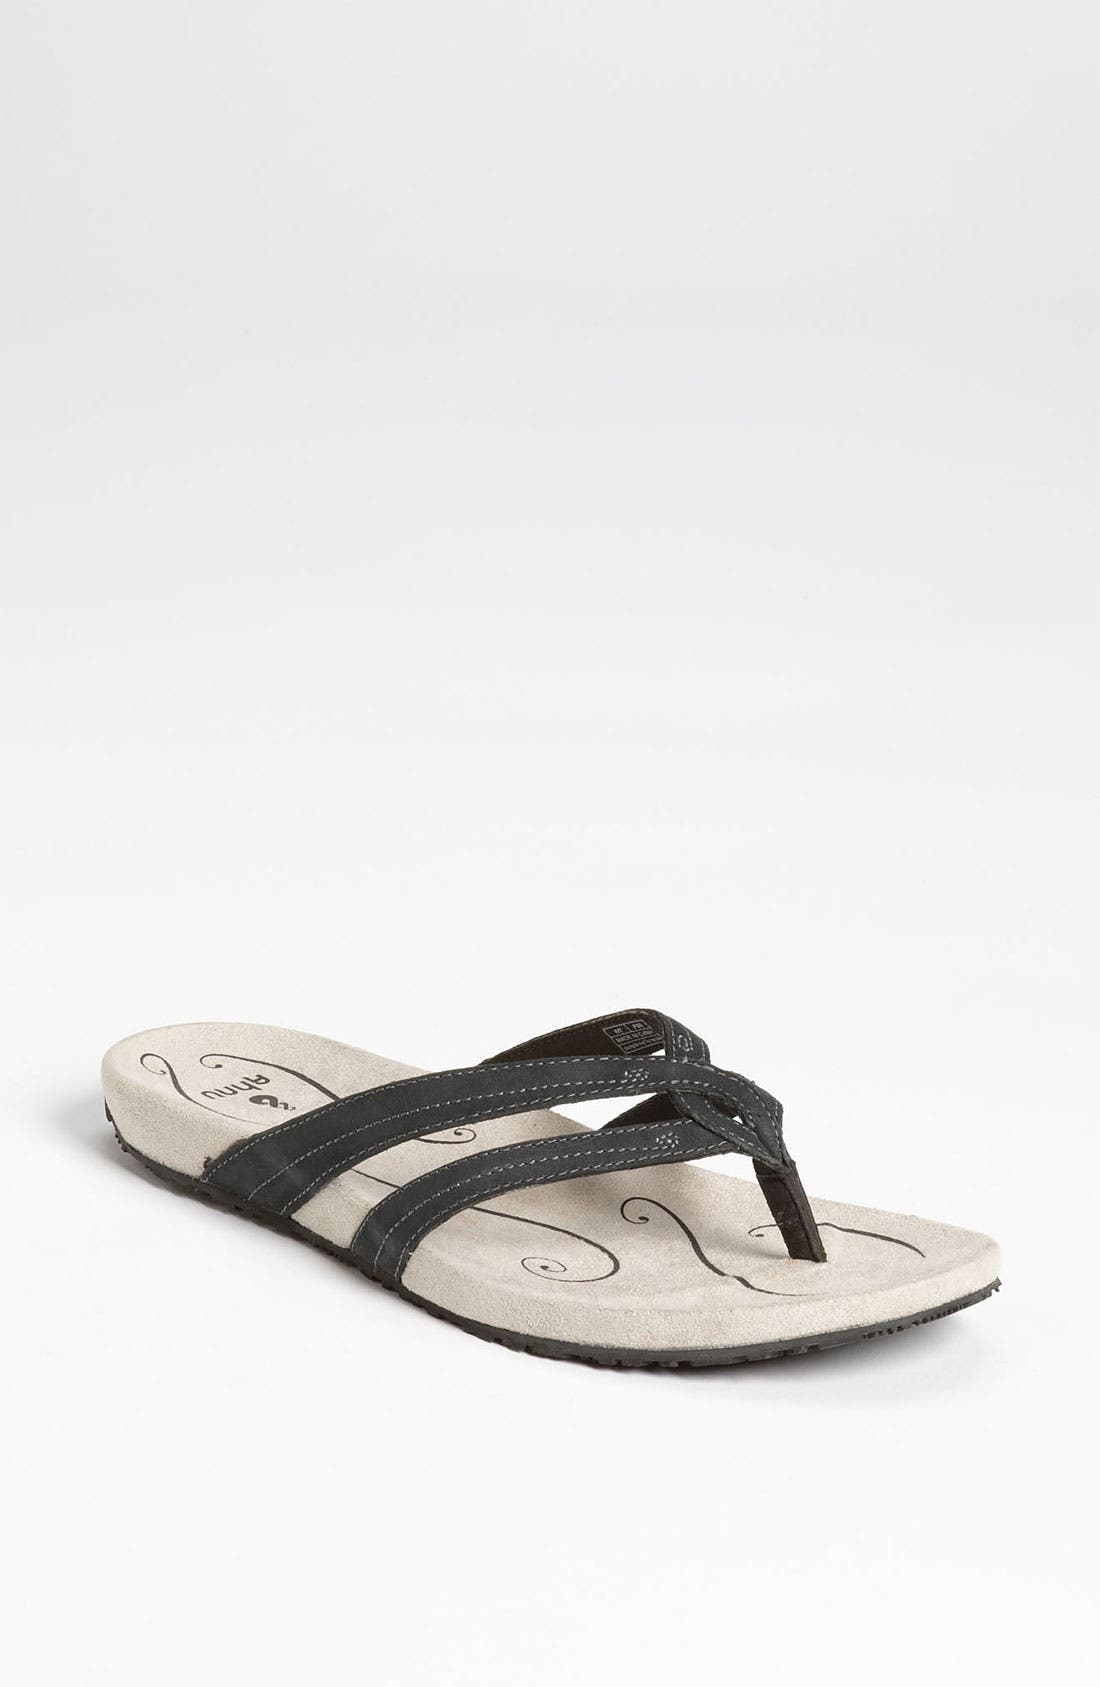 Alternate Image 1 Selected - Ahnu 'Hanaa' Sandal